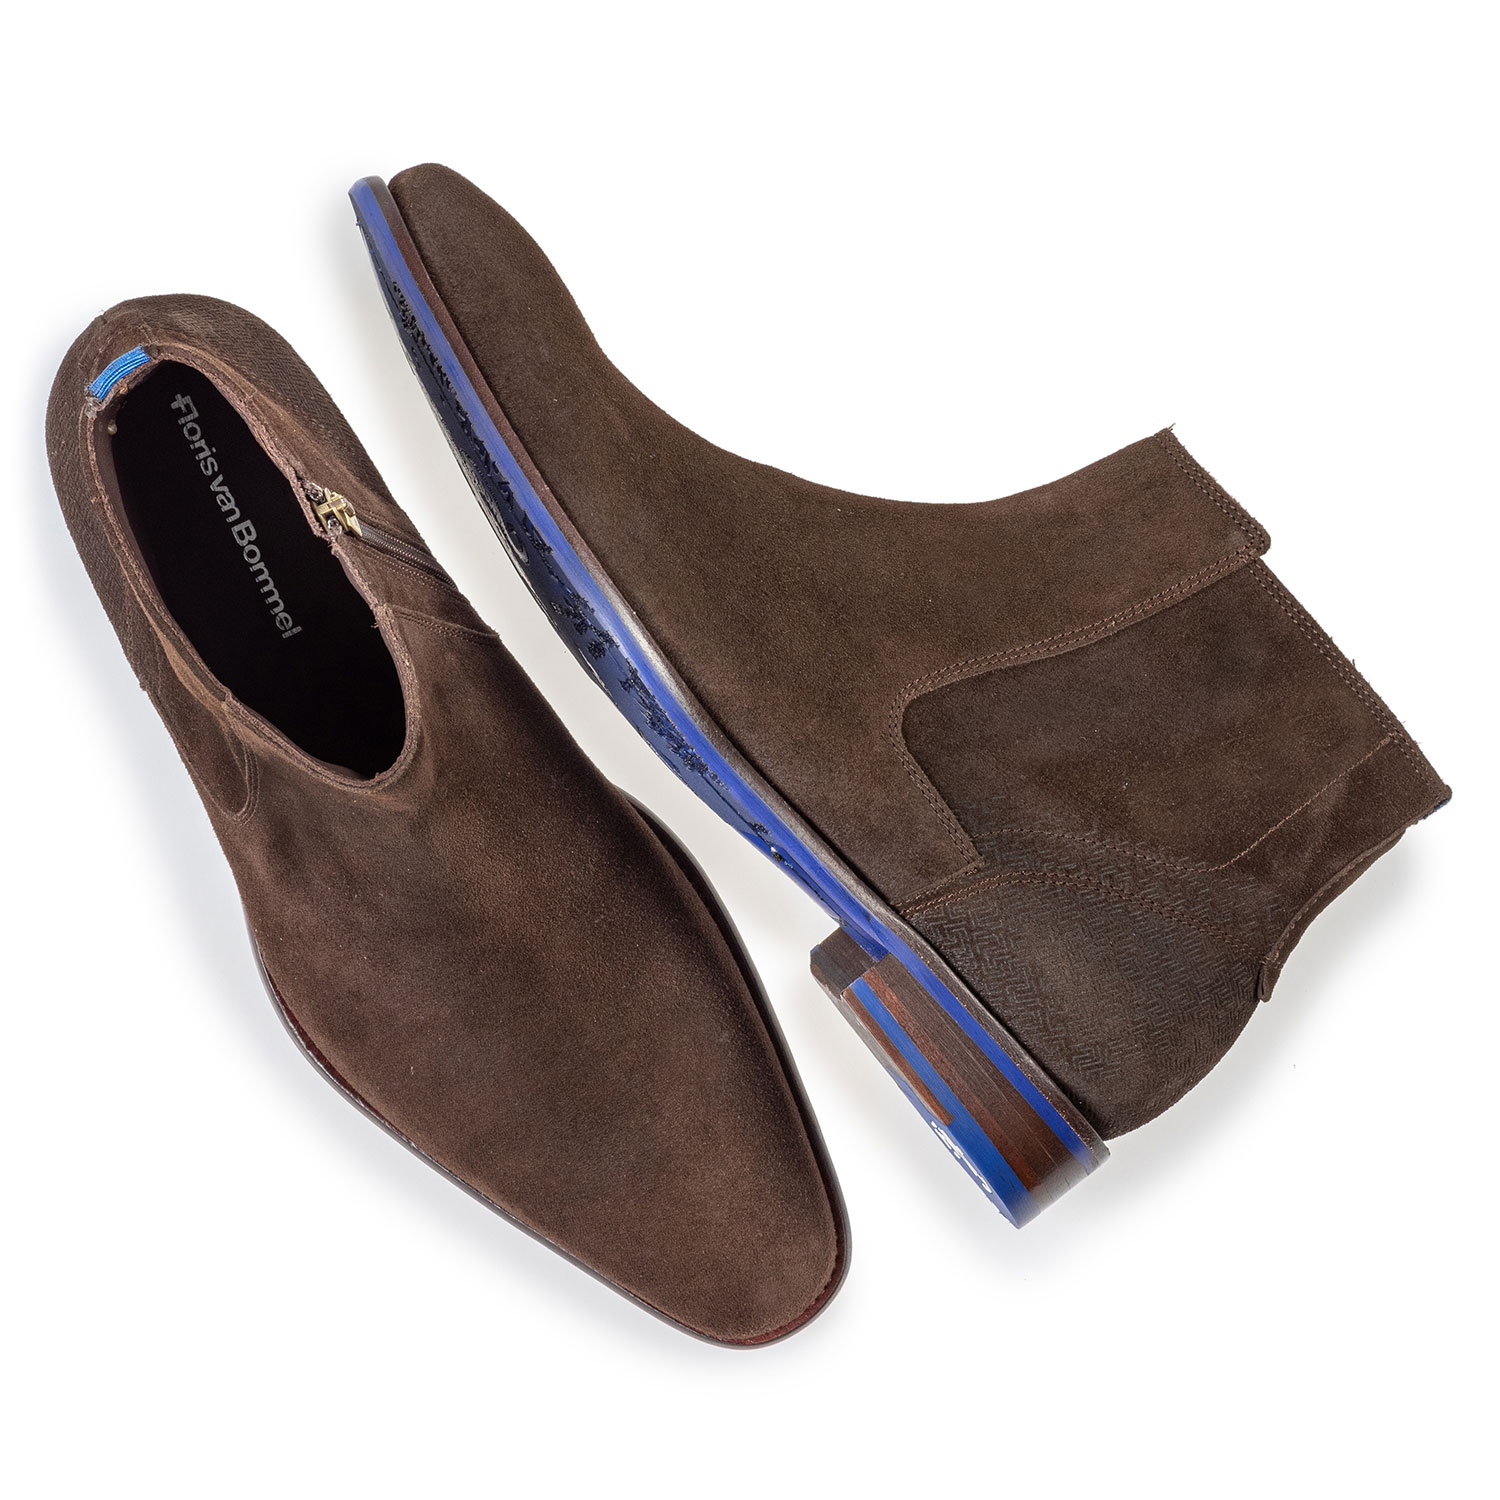 20131/03 - Chelsea boot brown suede leather